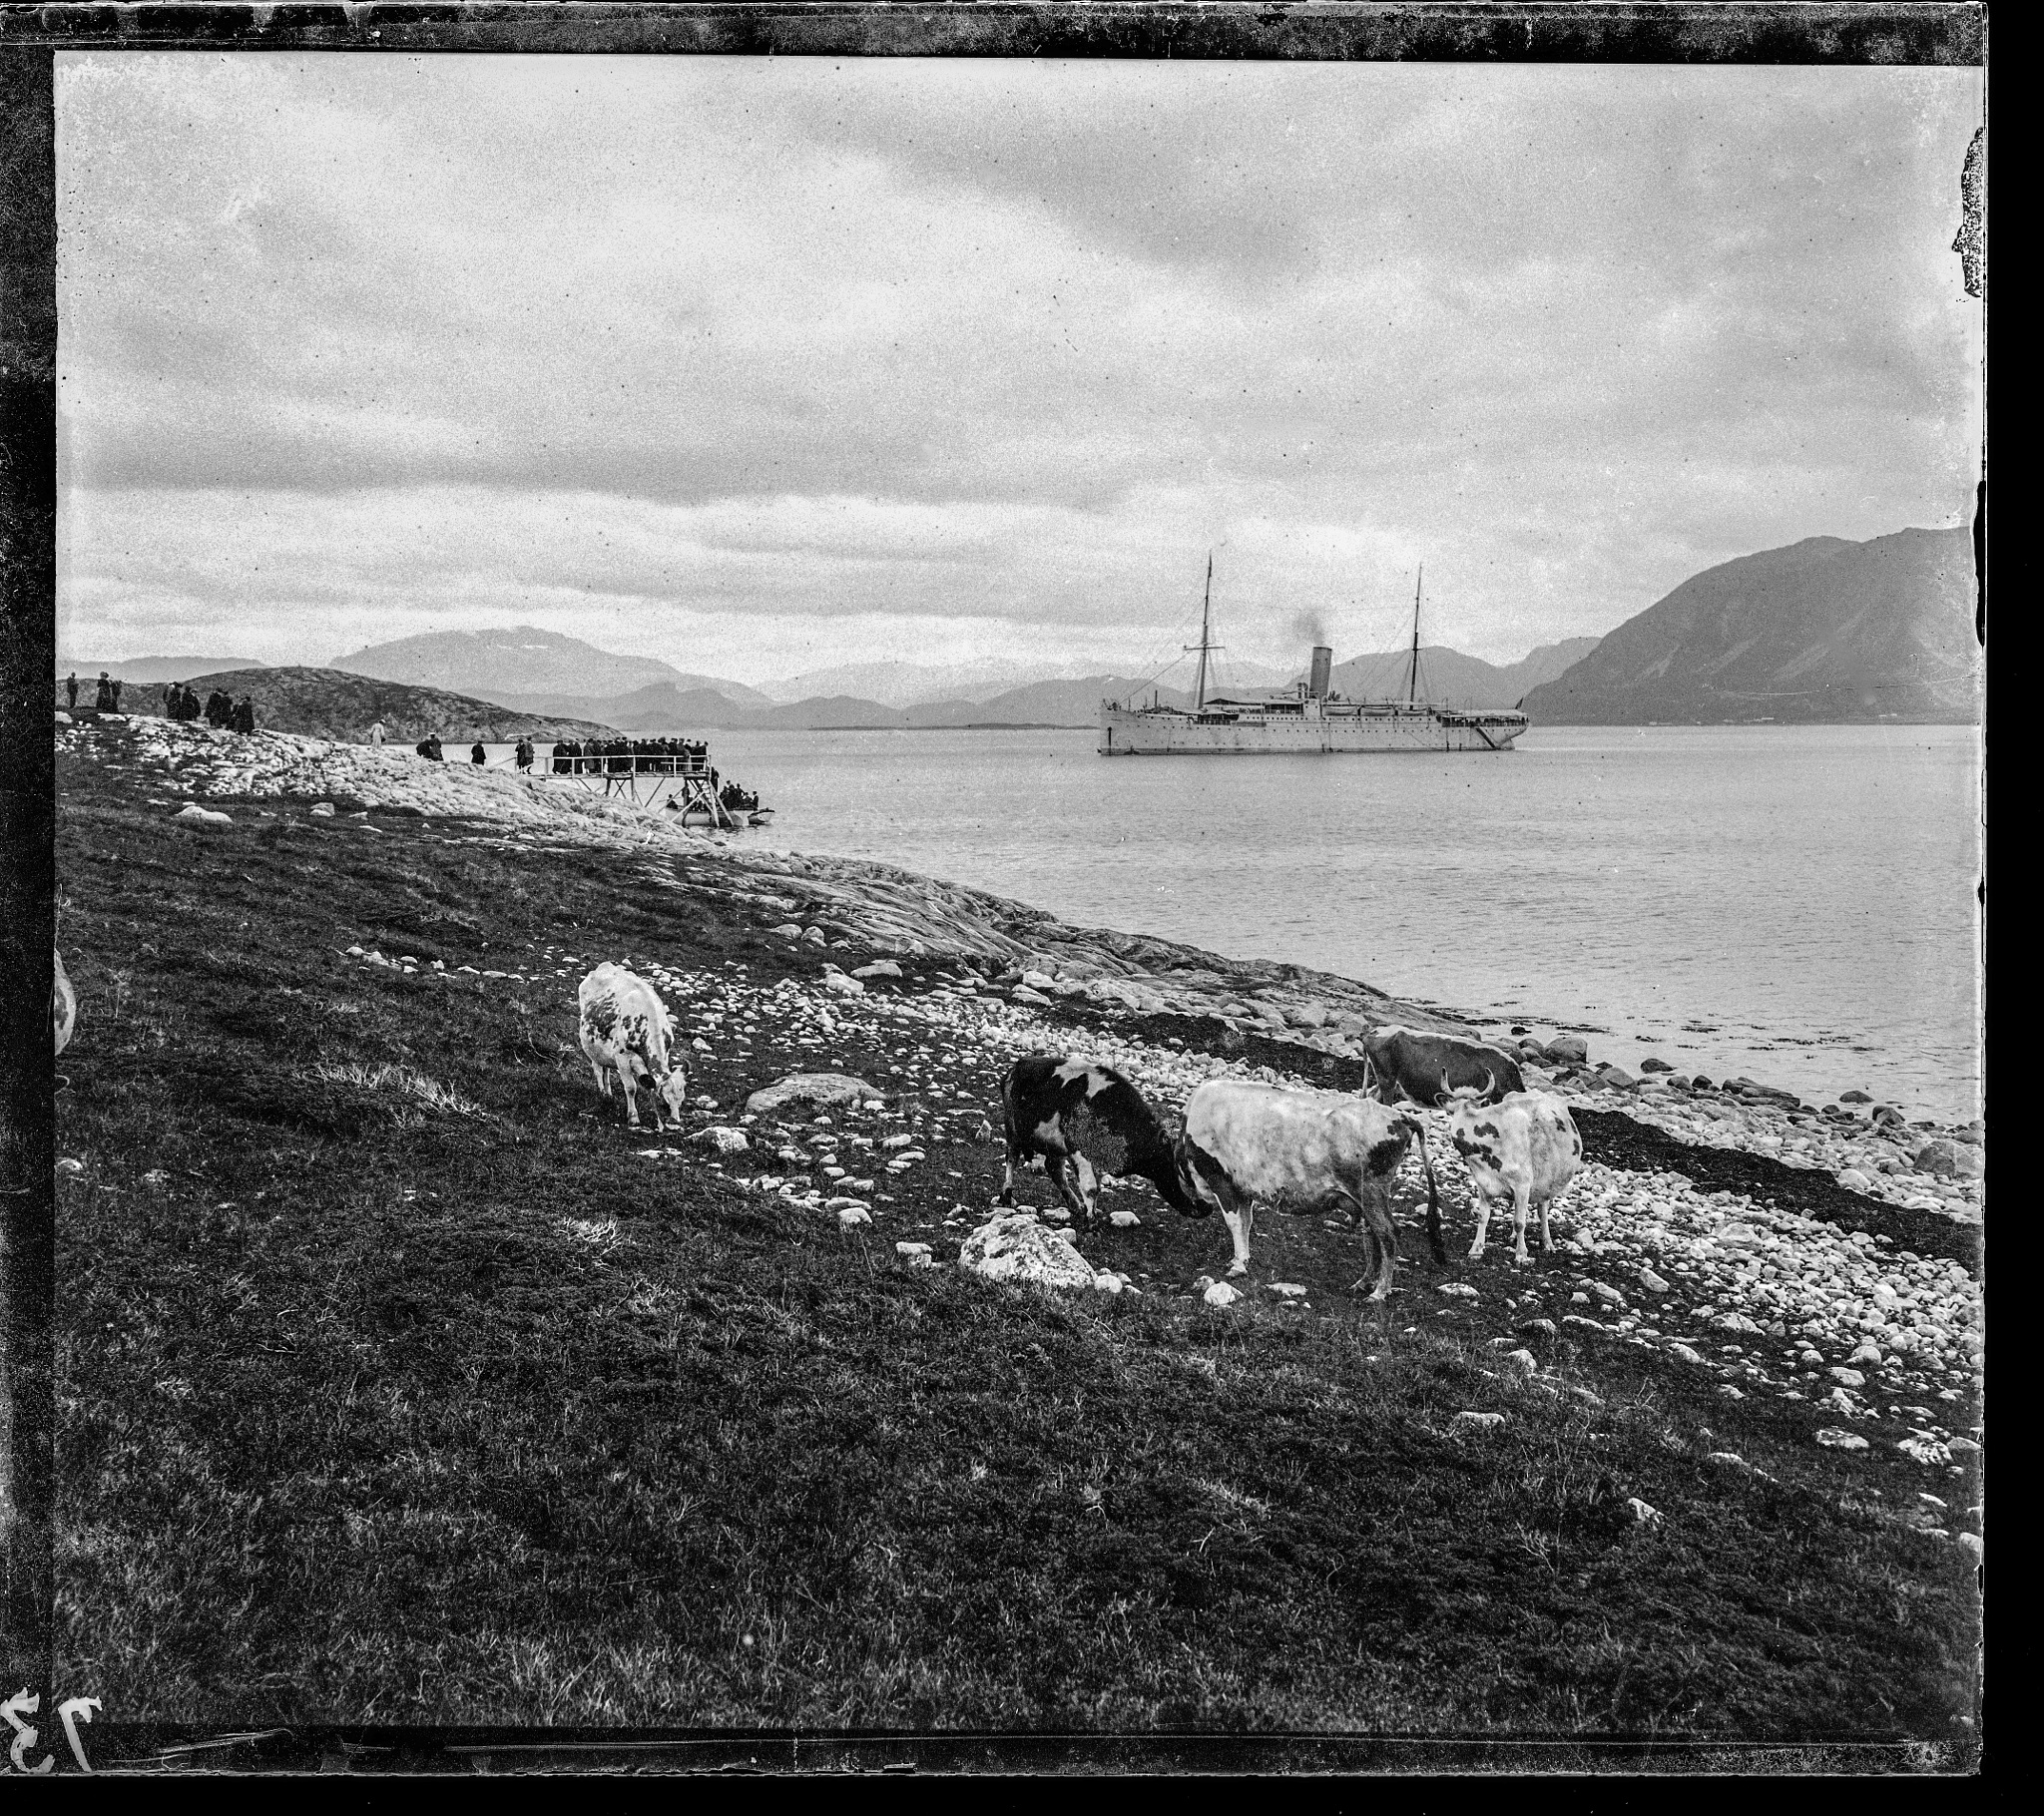 Cruiser, tourists and cows in a fjord, Norway, ca. 1897 by Martine de Lajudie